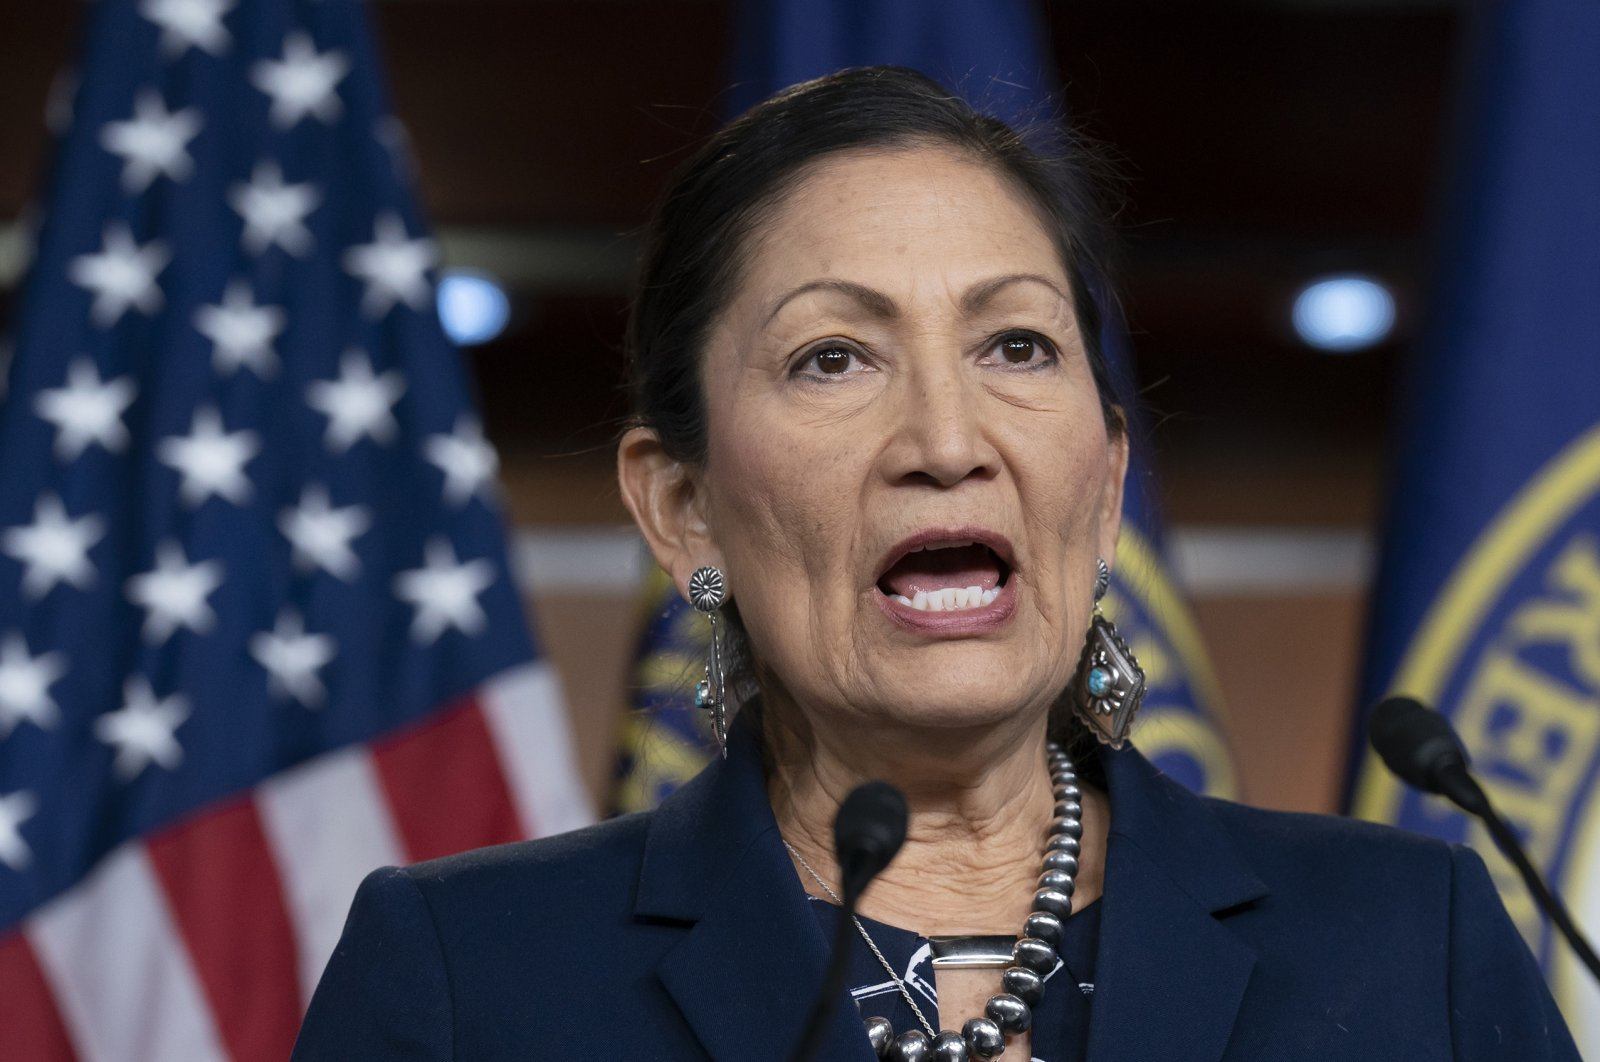 Rep. Deb Haaland, the Native American Caucus co-chair, speaks to reporters about the 2020 Census on Capitol Hill in Washington, D.C., U.S., March 5, 2020. (AP Photo)